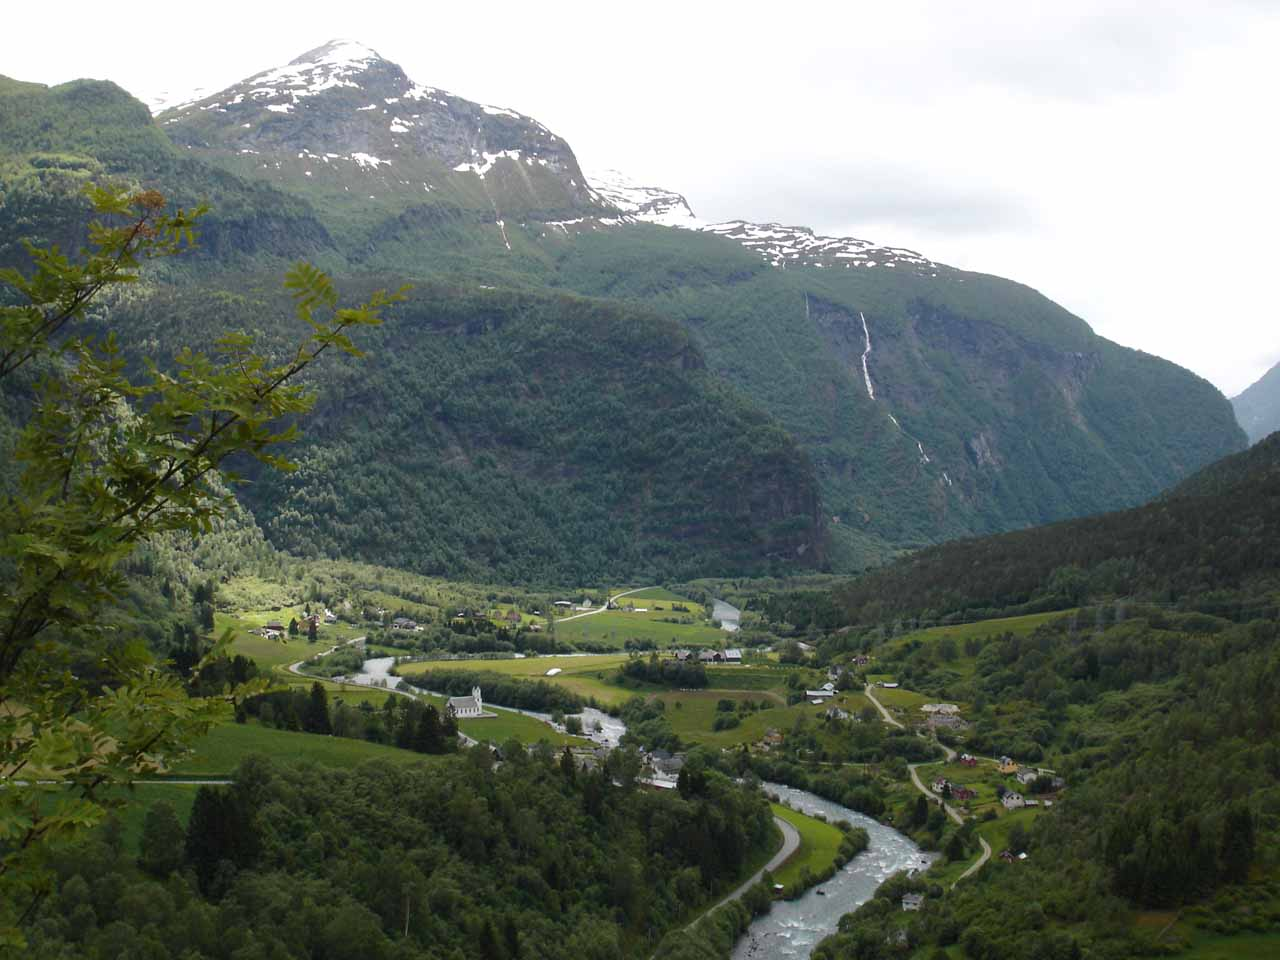 As we approached Vassbakkfossen, we got this view looking down along the river Fortunselvi on our way down to Skjolden from the valley along Bringselvi as we headed west from Turtagrø